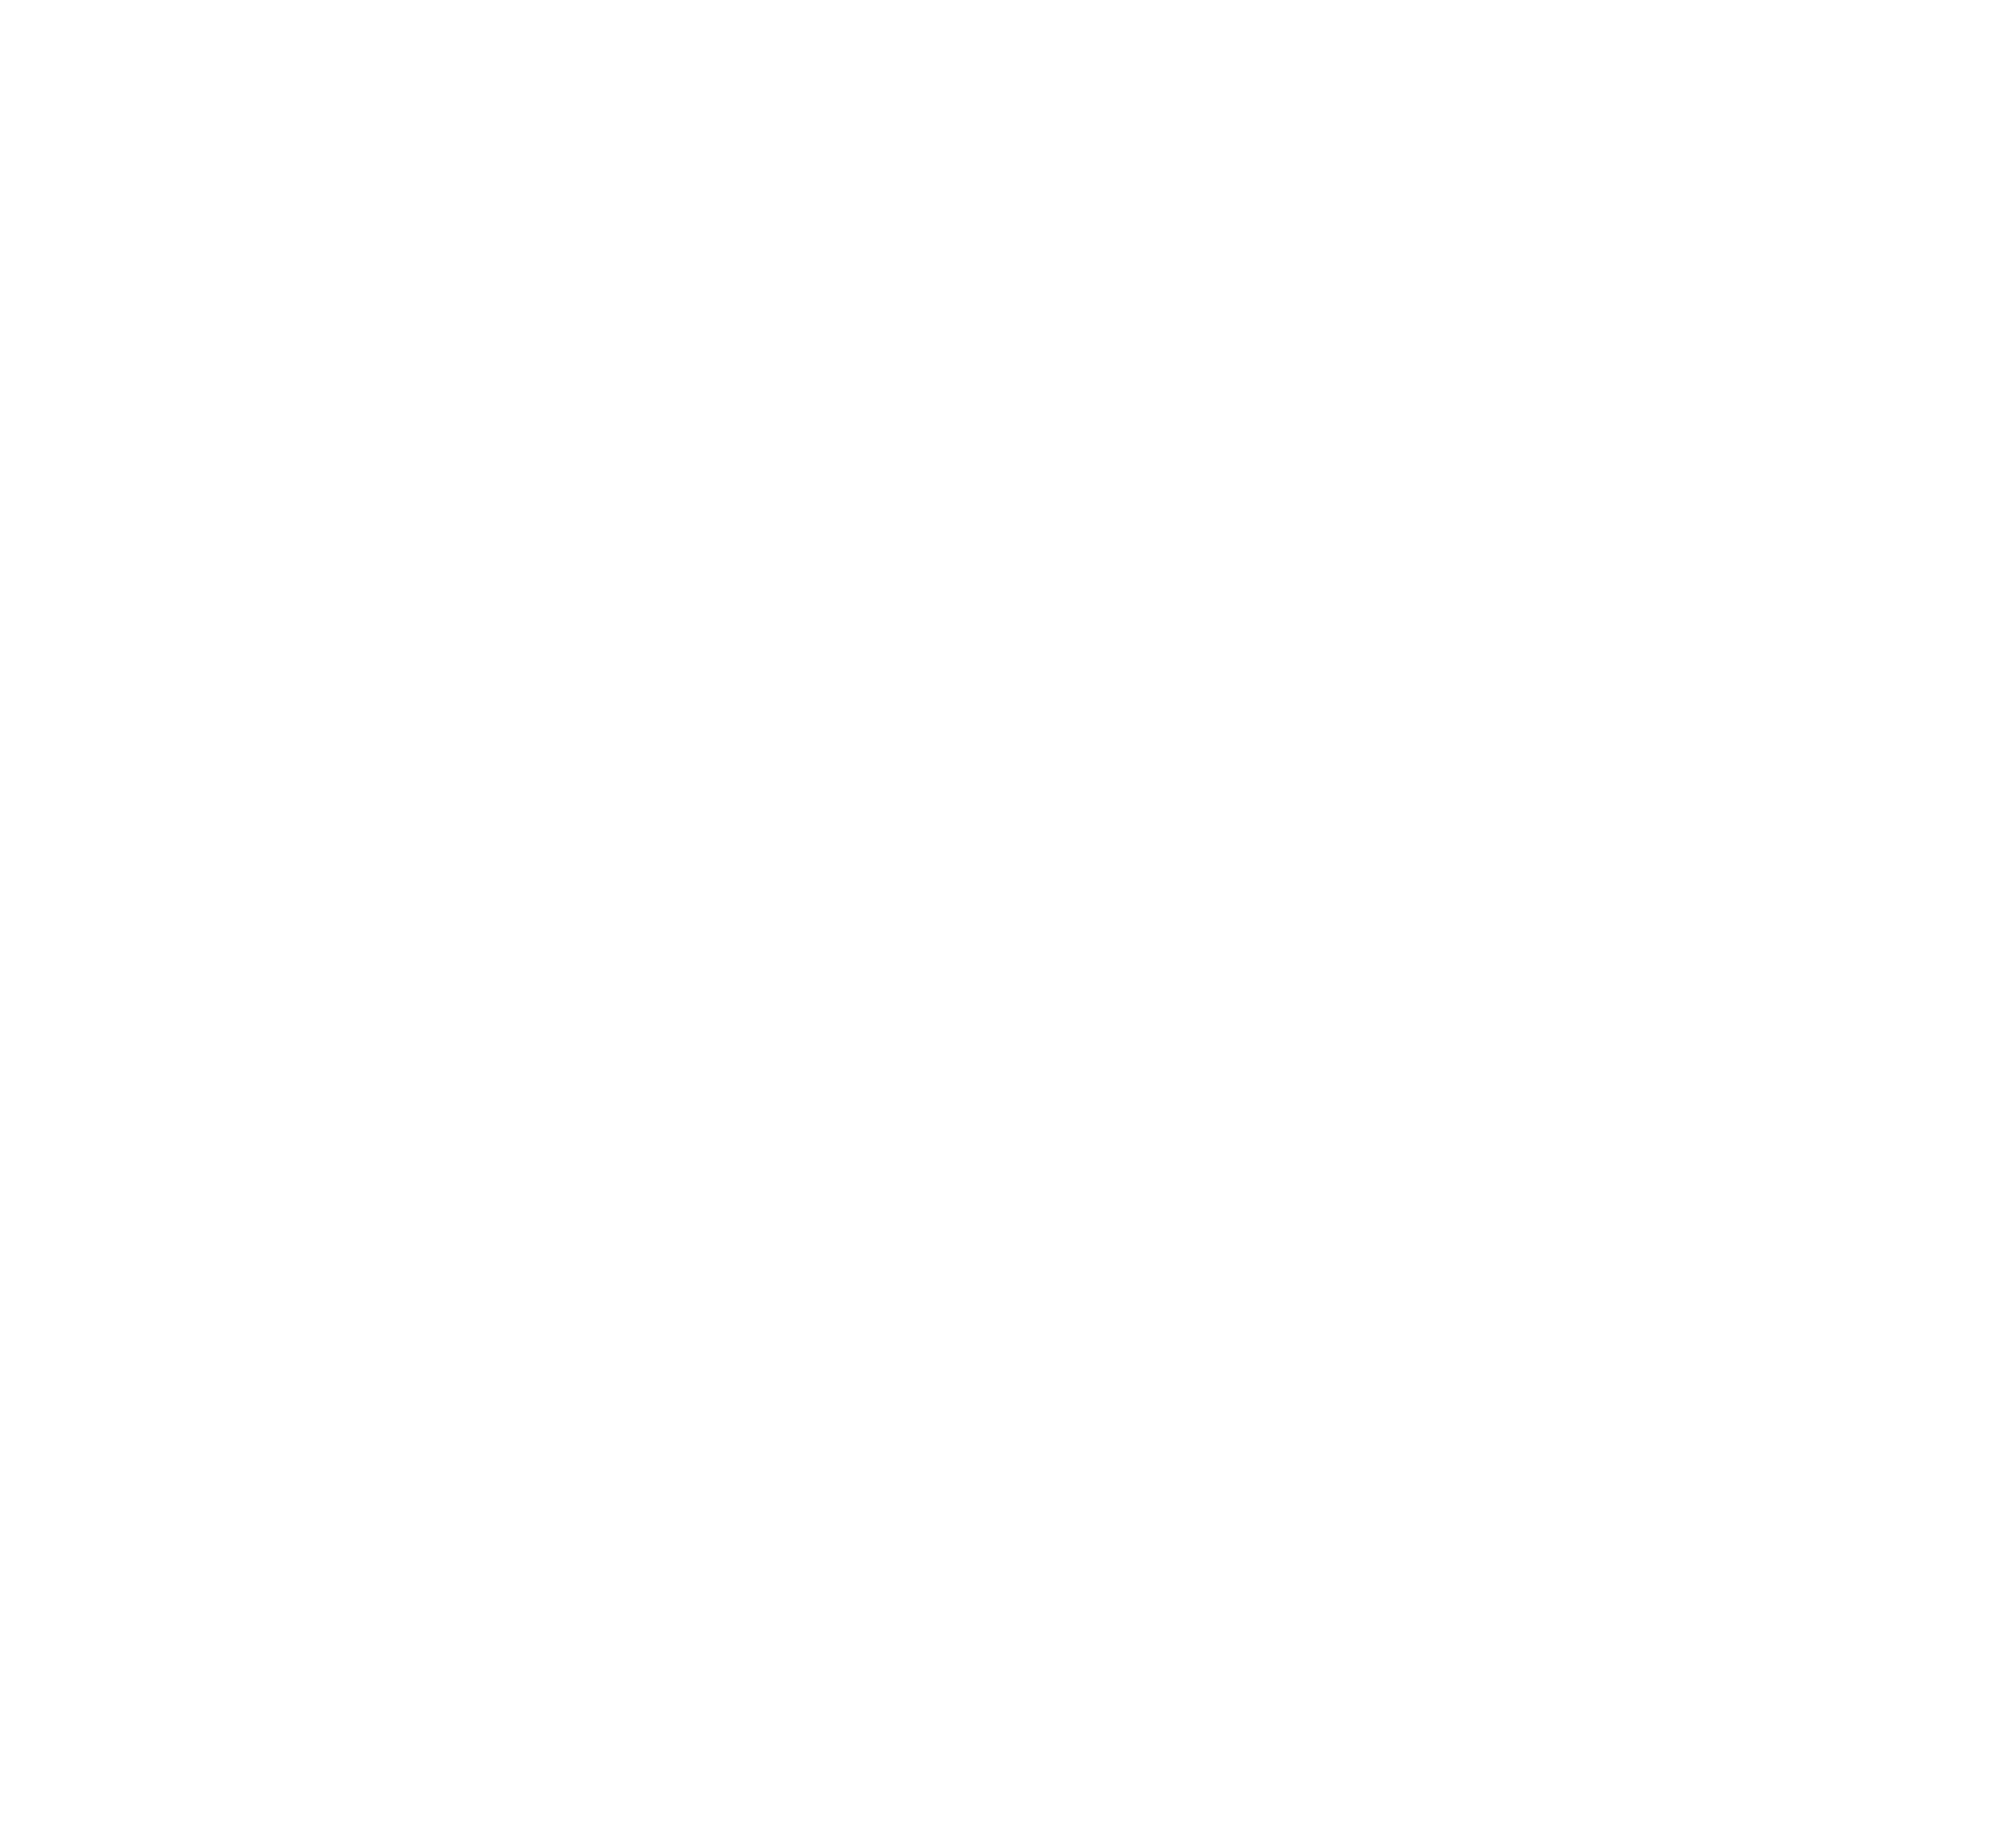 The Good, The Bad, & The Rugby